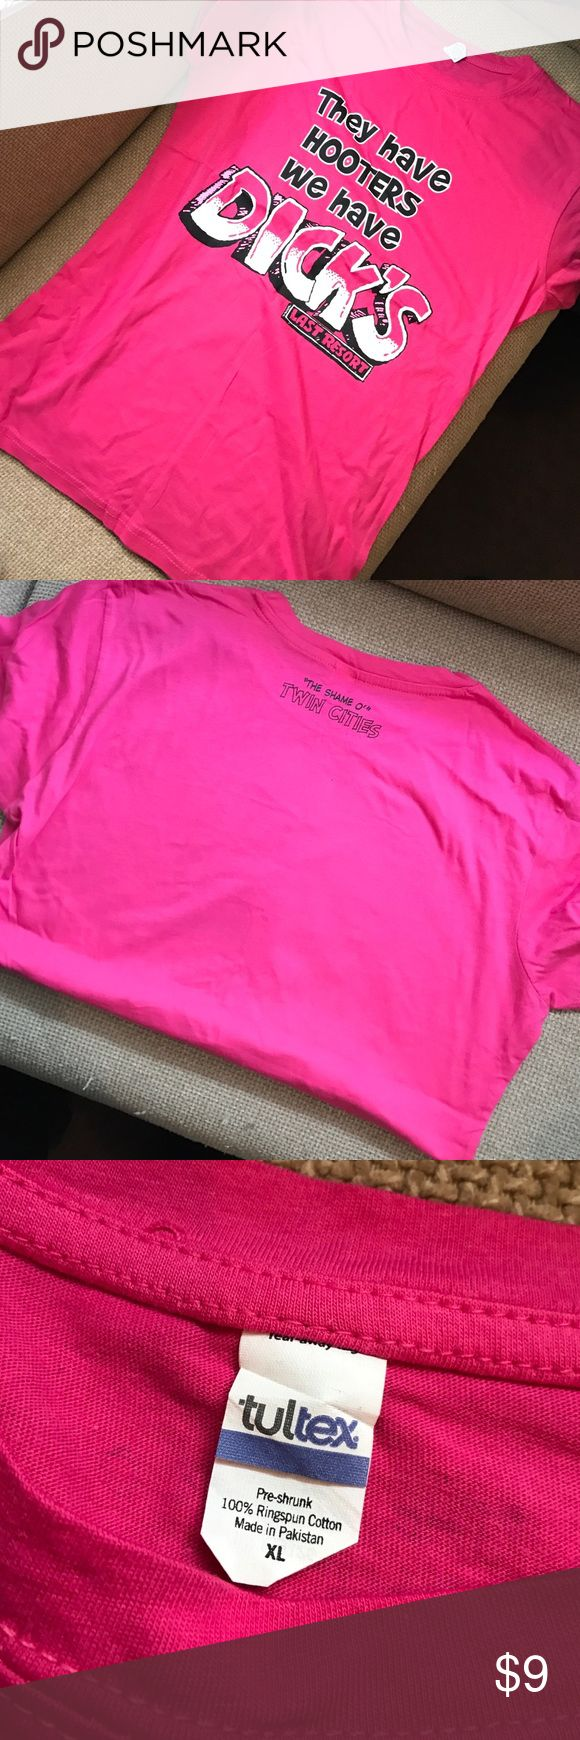 Dicks last resort hot pink XL shirt New without tags Tops Tees - Short Sleeve